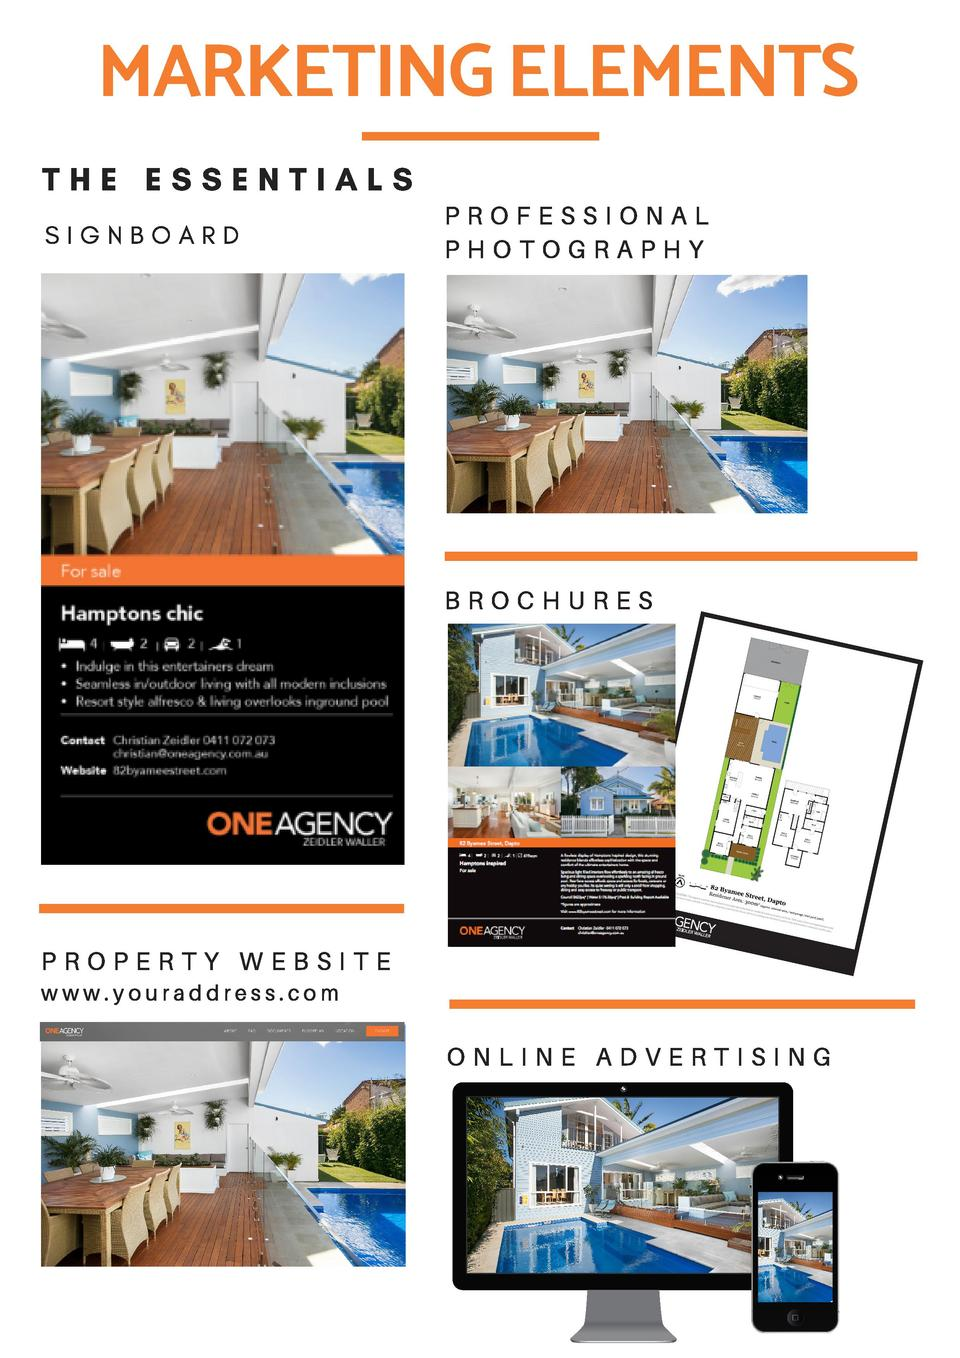 MARKETING ELEMENTS THE ESSENTIALS S I G N B O A R D  PROFESSIONAL PHOTOGRAPHY  BROCHURES  PROPERTY WEBSITE www.youraddress...